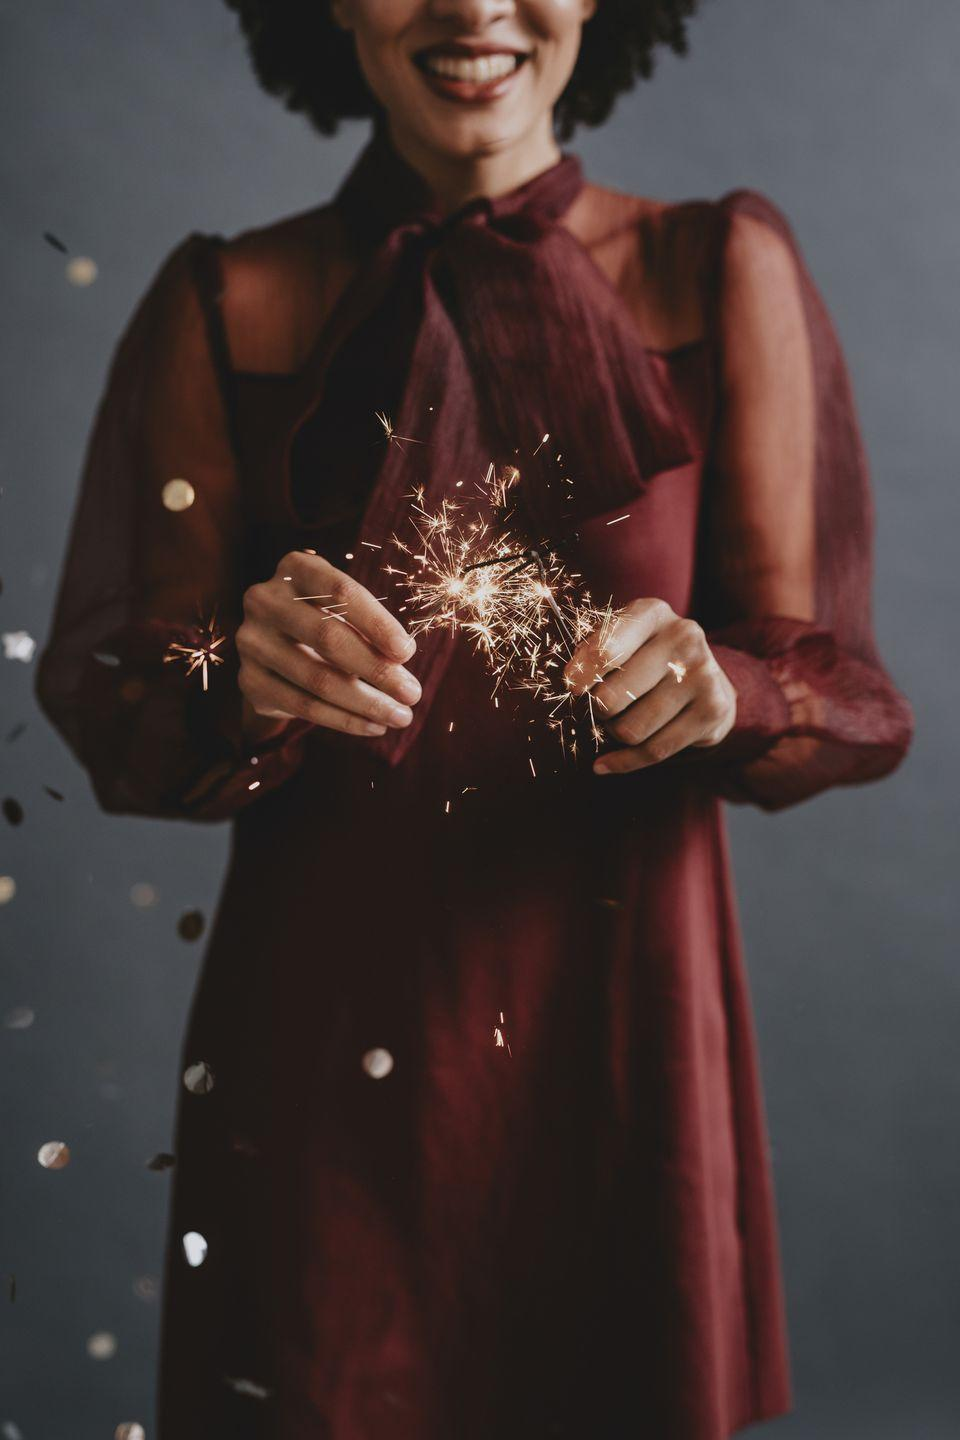 "<p>Just because you're staying home doesn't mean you have to wear your PJs (although if you want to, you should!). Throw on your favorite holiday dress and some bold New Year's Eve makeup. Who cares if the only one who sees it is the cat?</p><p><strong>RELATED: </strong><a href=""https://www.goodhousekeeping.com/beauty/fashion/g25400387/new-years-eve-outfits/"" rel=""nofollow noopener"" target=""_blank"" data-ylk=""slk:20 Affordable New Year's Eve Outfits to Ring in 2021 in Style"" class=""link rapid-noclick-resp"">20 Affordable New Year's Eve Outfits to Ring in 2021 in Style</a></p>"